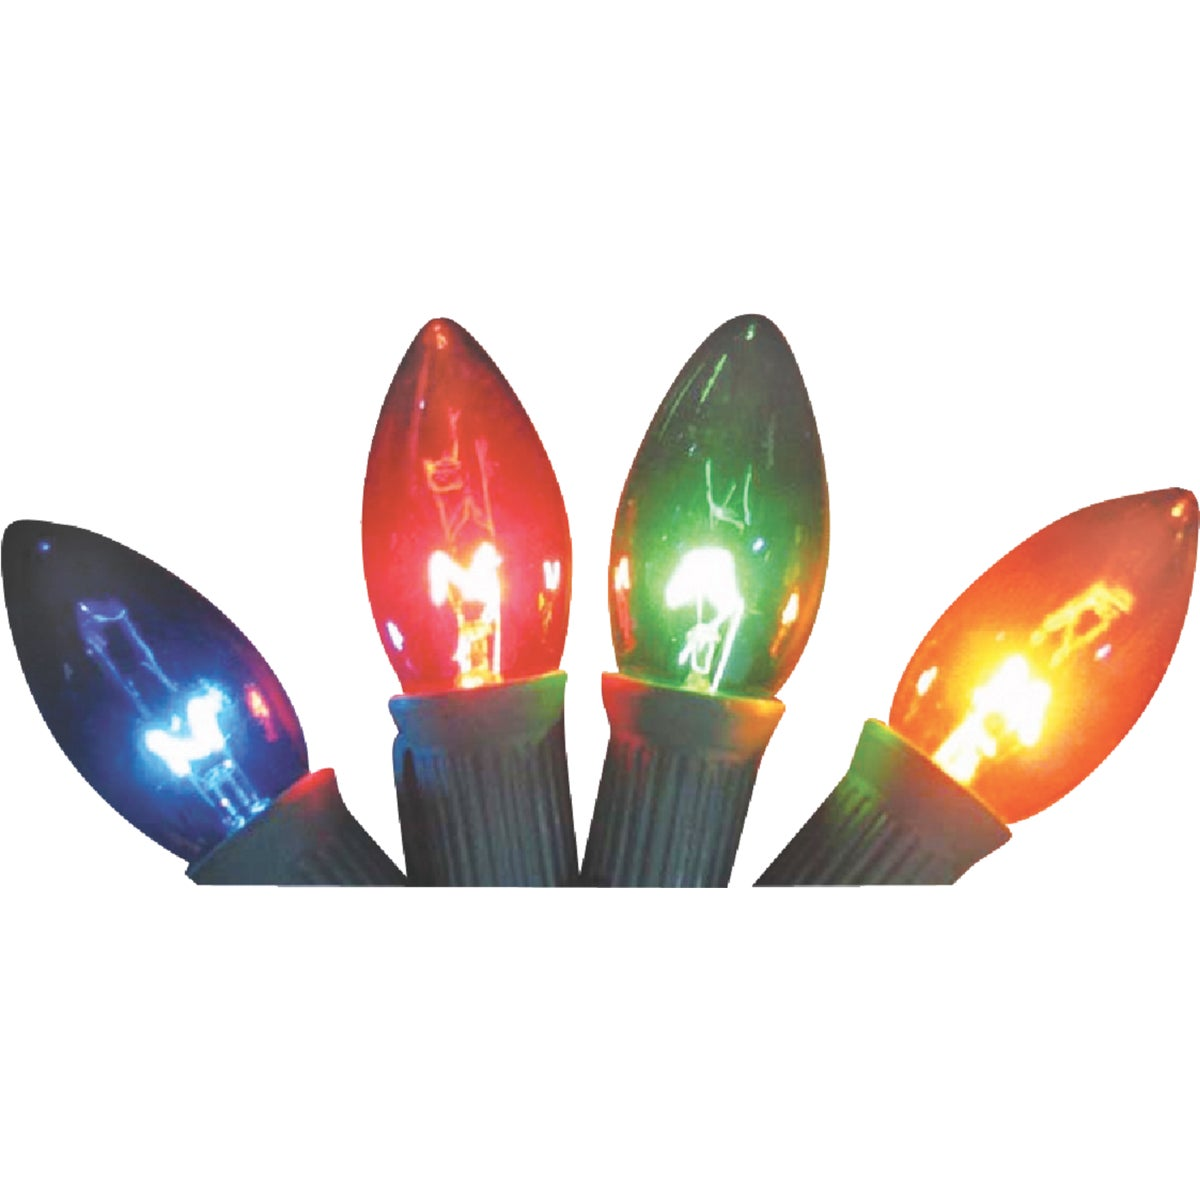 4PK C9 MULTI TRANS BULB